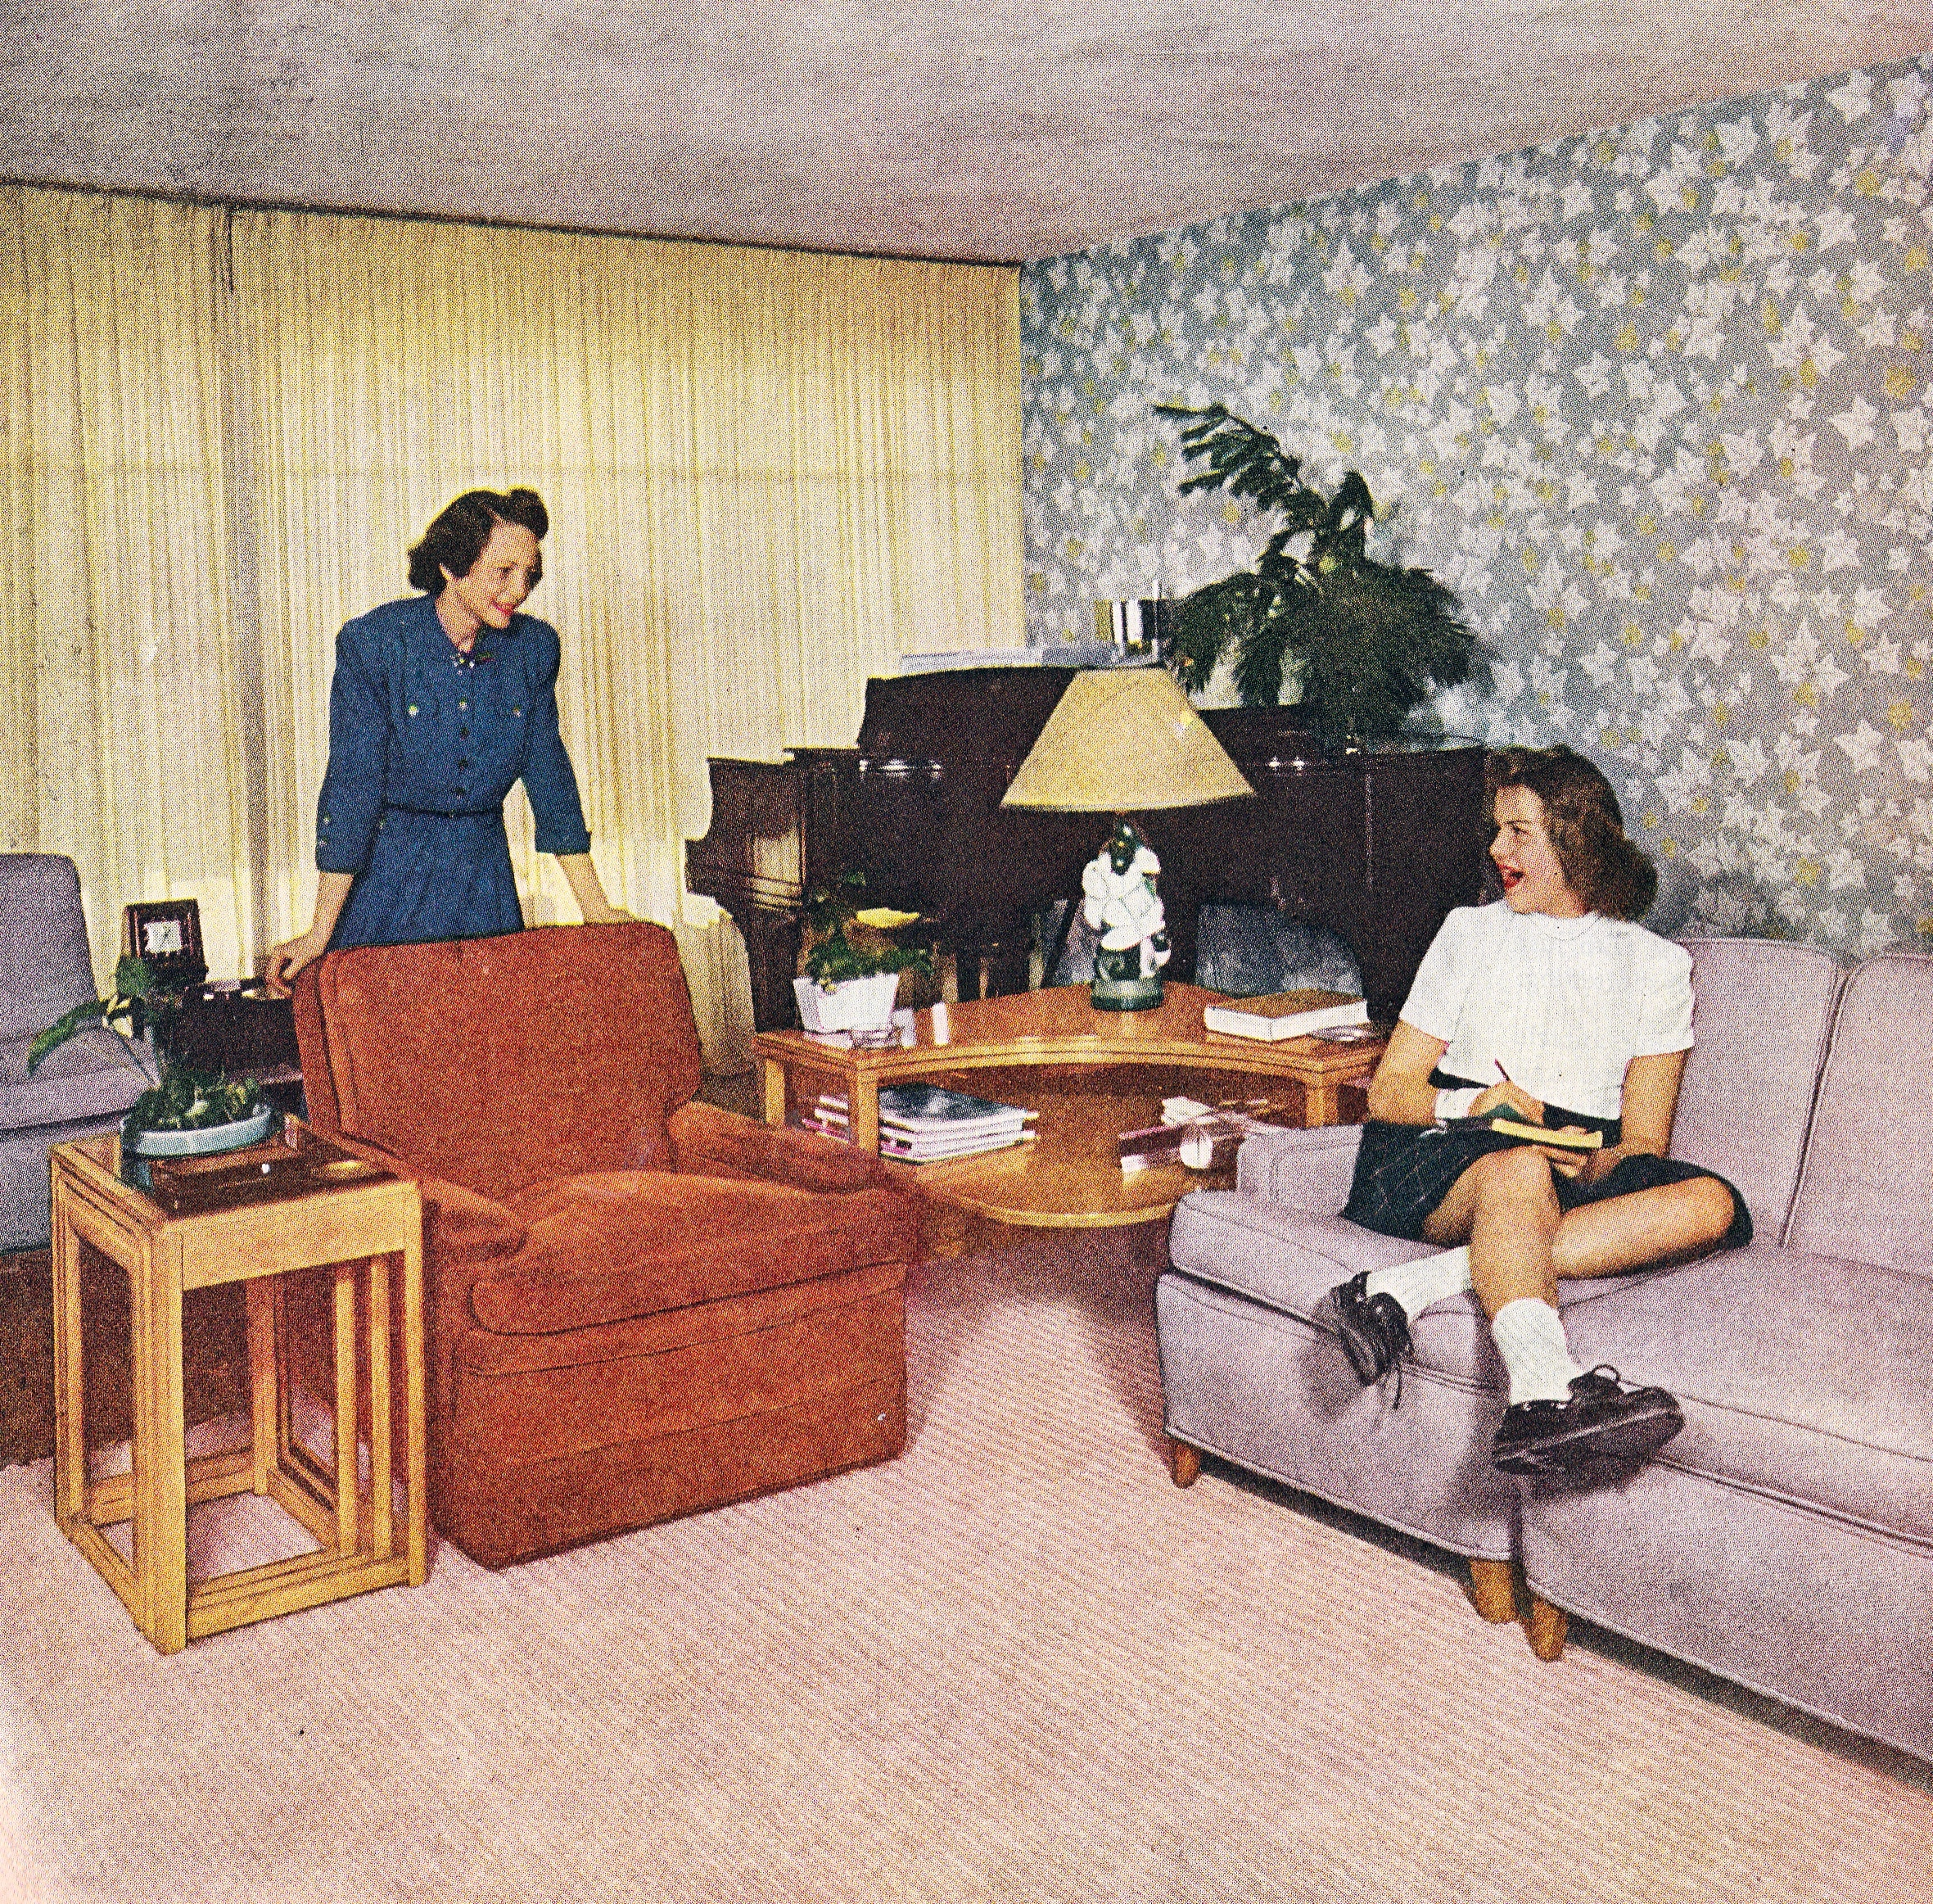 Mom Tells Daughter Dirty Jokes in Dismal Living Room | Flickr